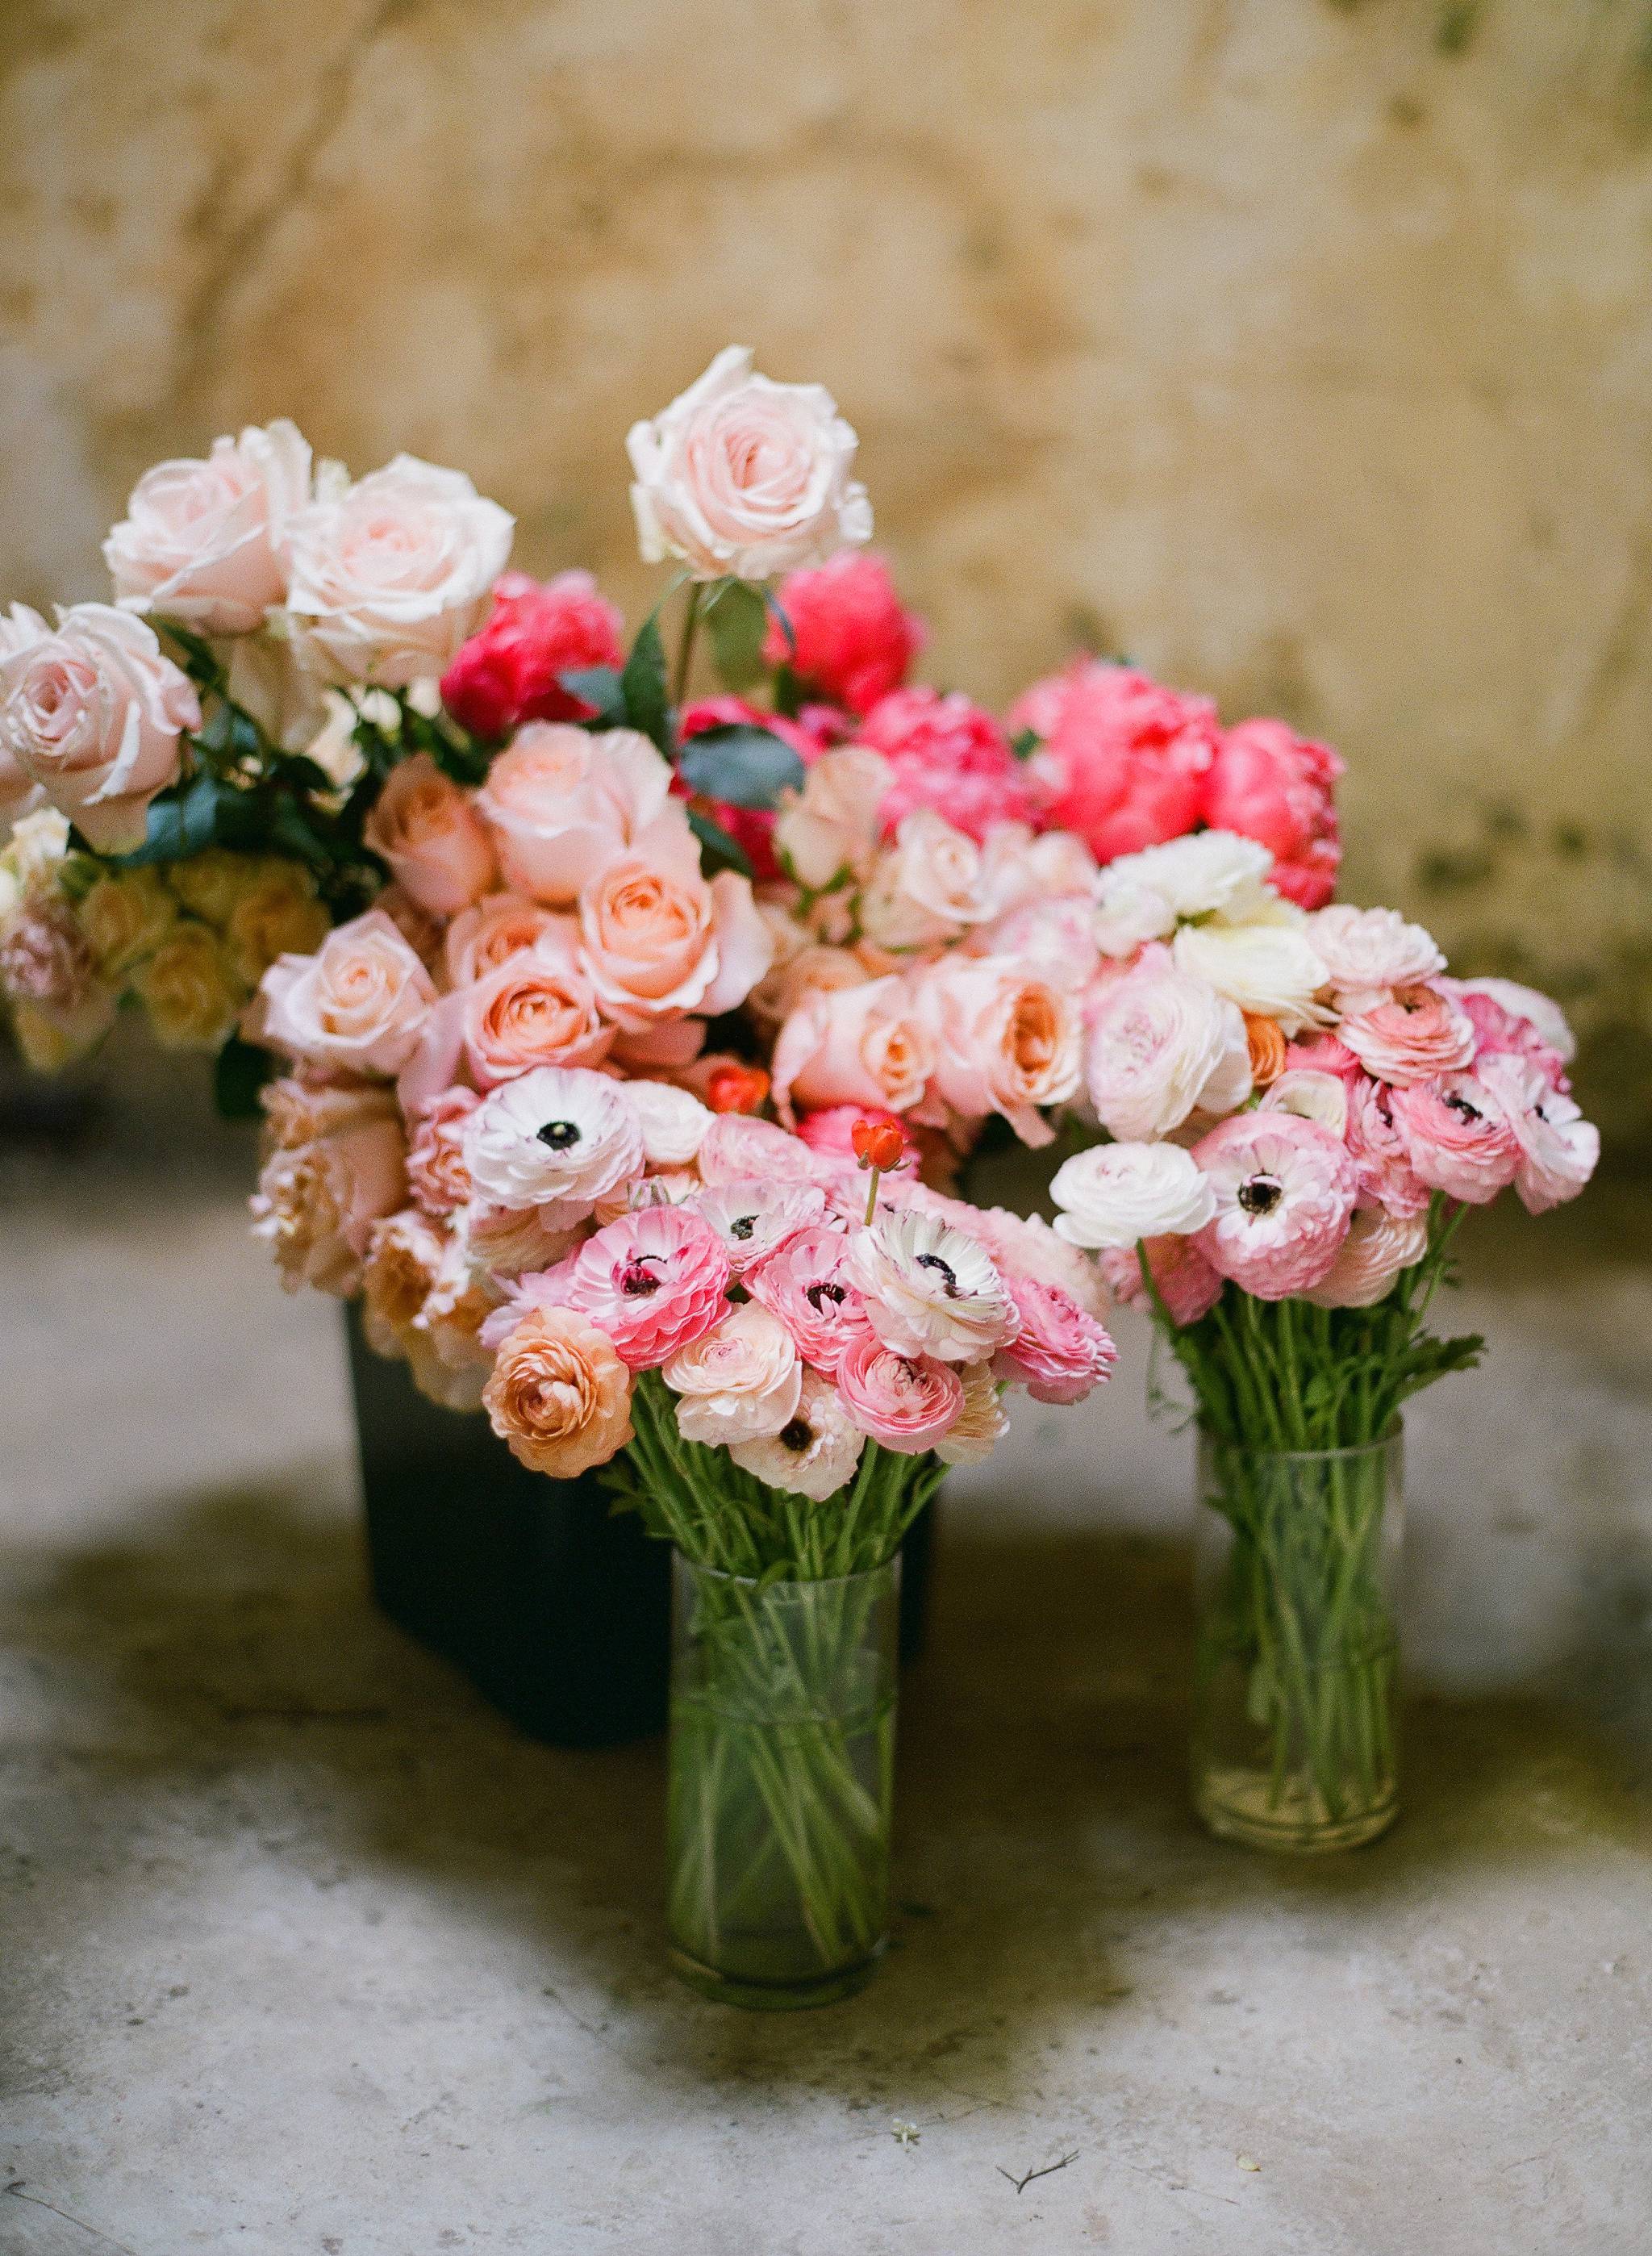 Zinnia Floral Designs- Spring Class at the Farm